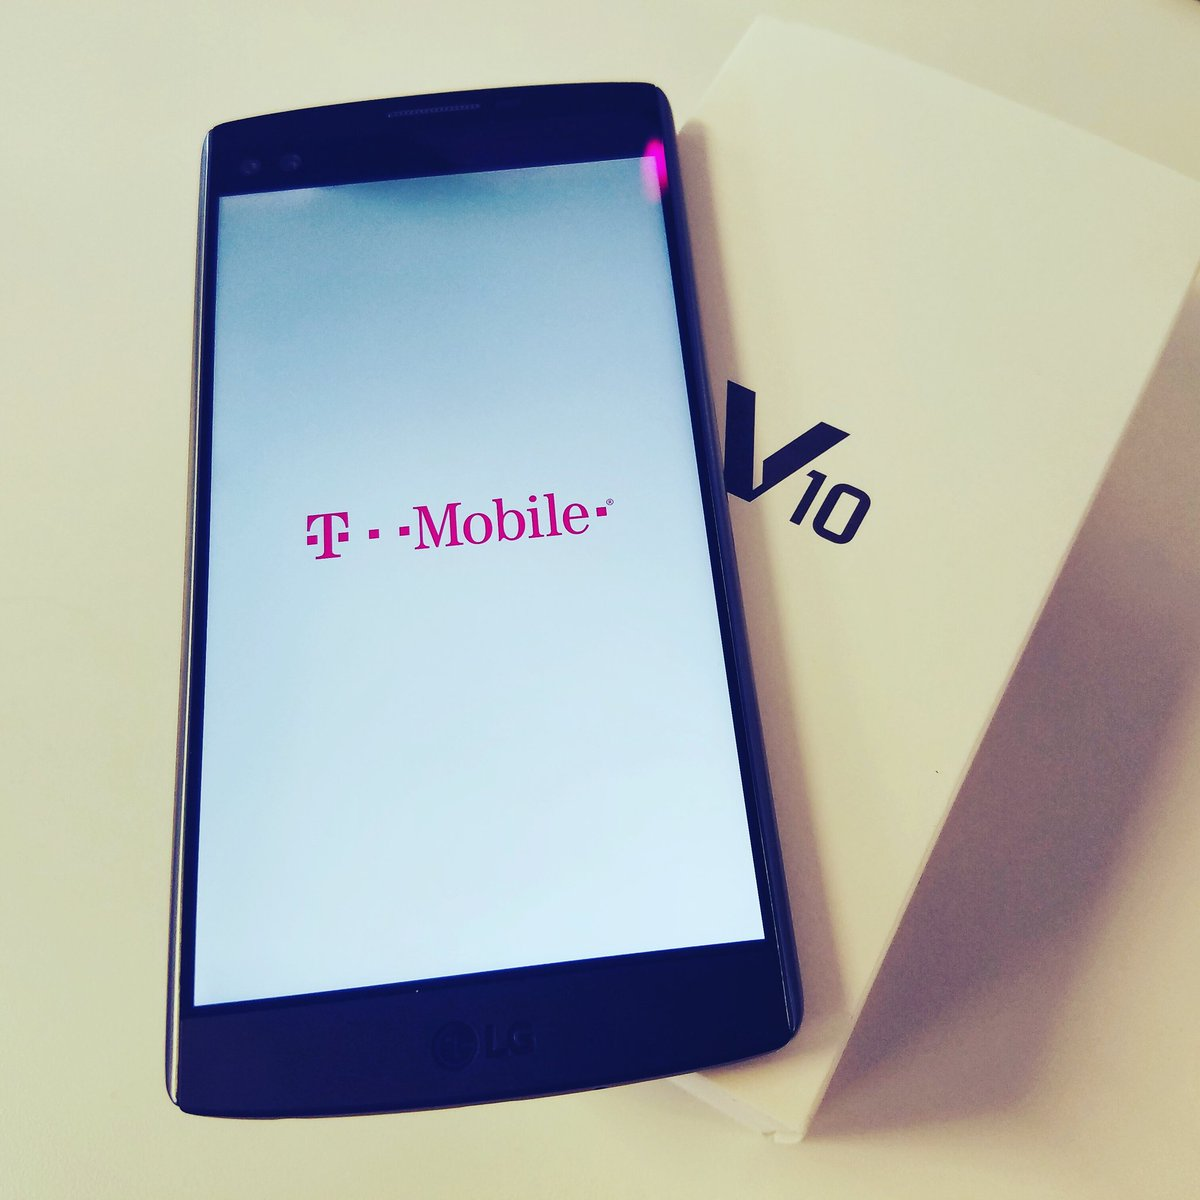 LG V10 on T-Mobile set to net Android Marshmallow update next week